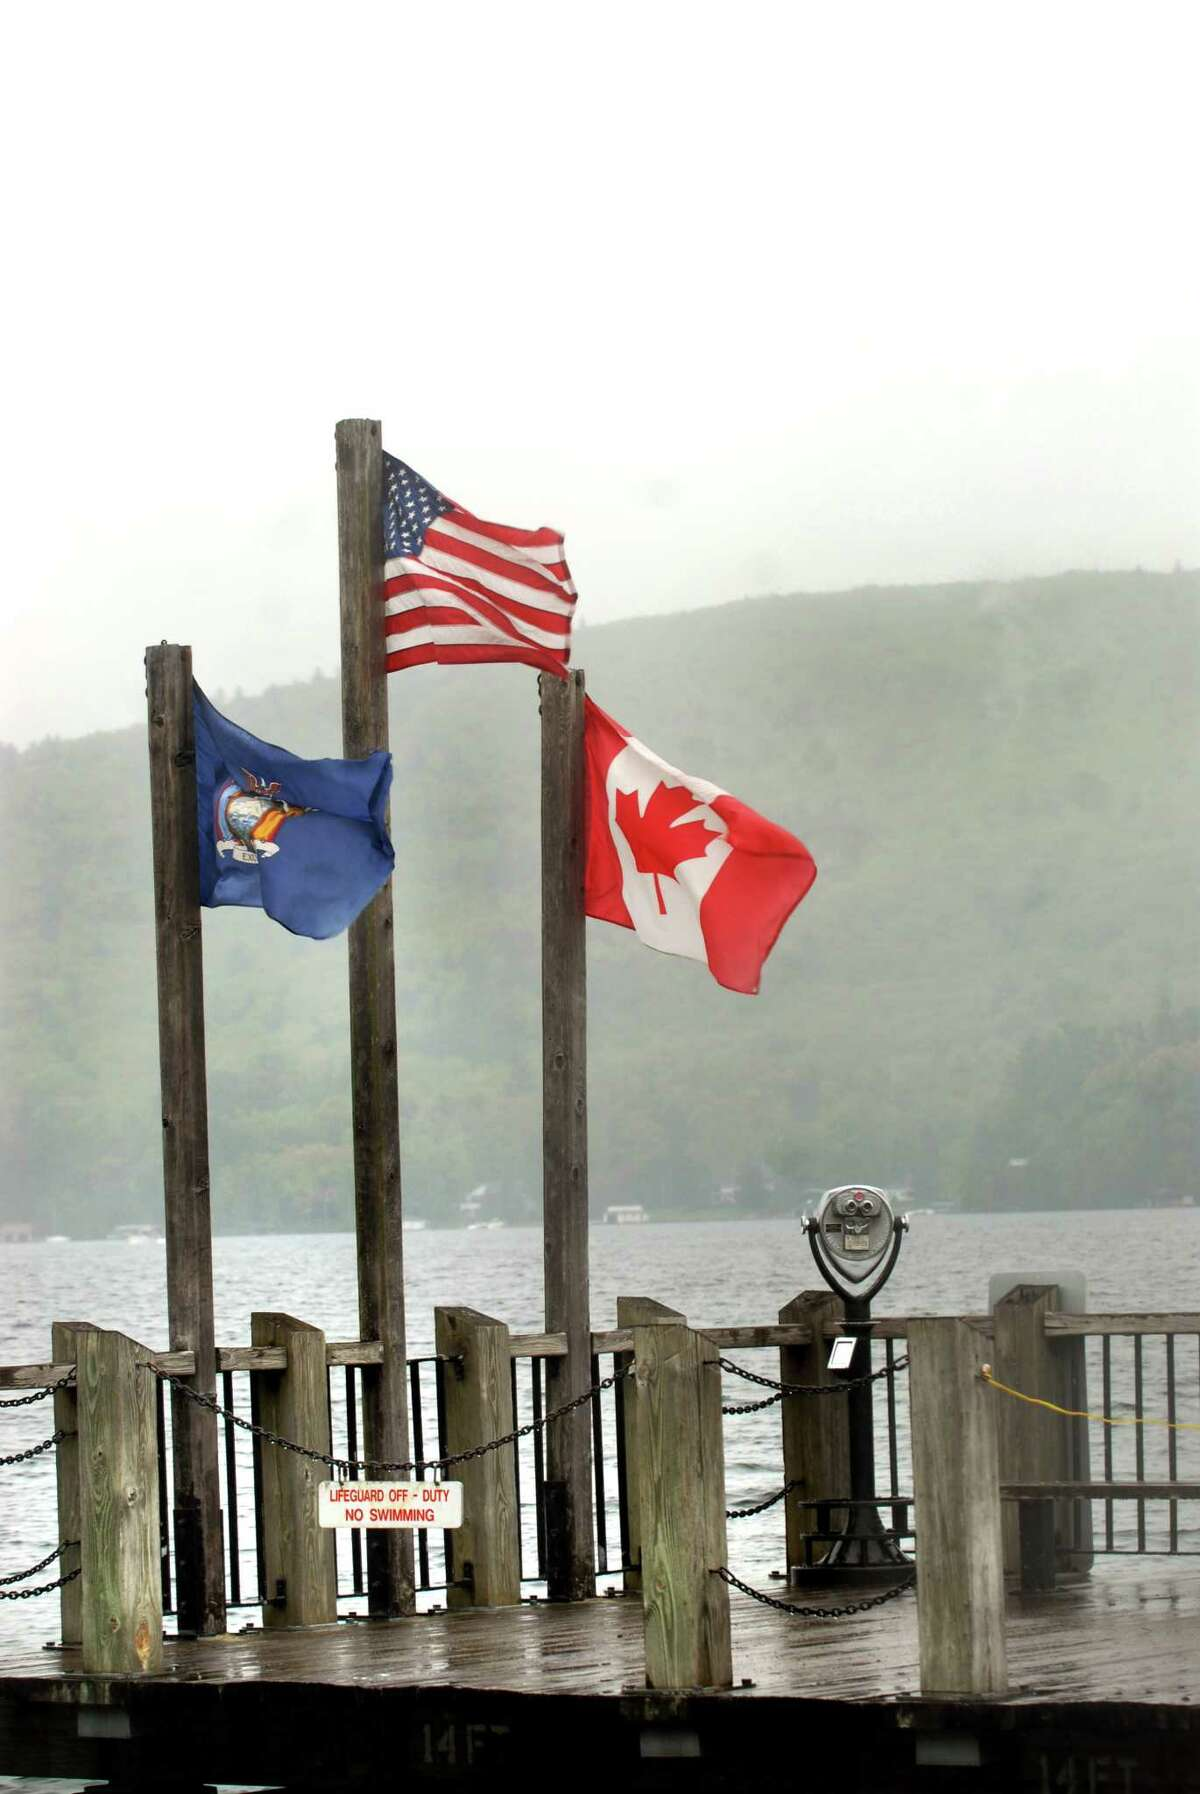 Despite sagging Canadian opinions about the United States and President Donald Trump, business and tourism ties between New York and Canada appeared not to have suffered this summer, according to officials. Here, the Canadian flag flies with the U.S. flag and the New York State flag on the public dock at the tourist destination of Lake George. (Times Union archive)